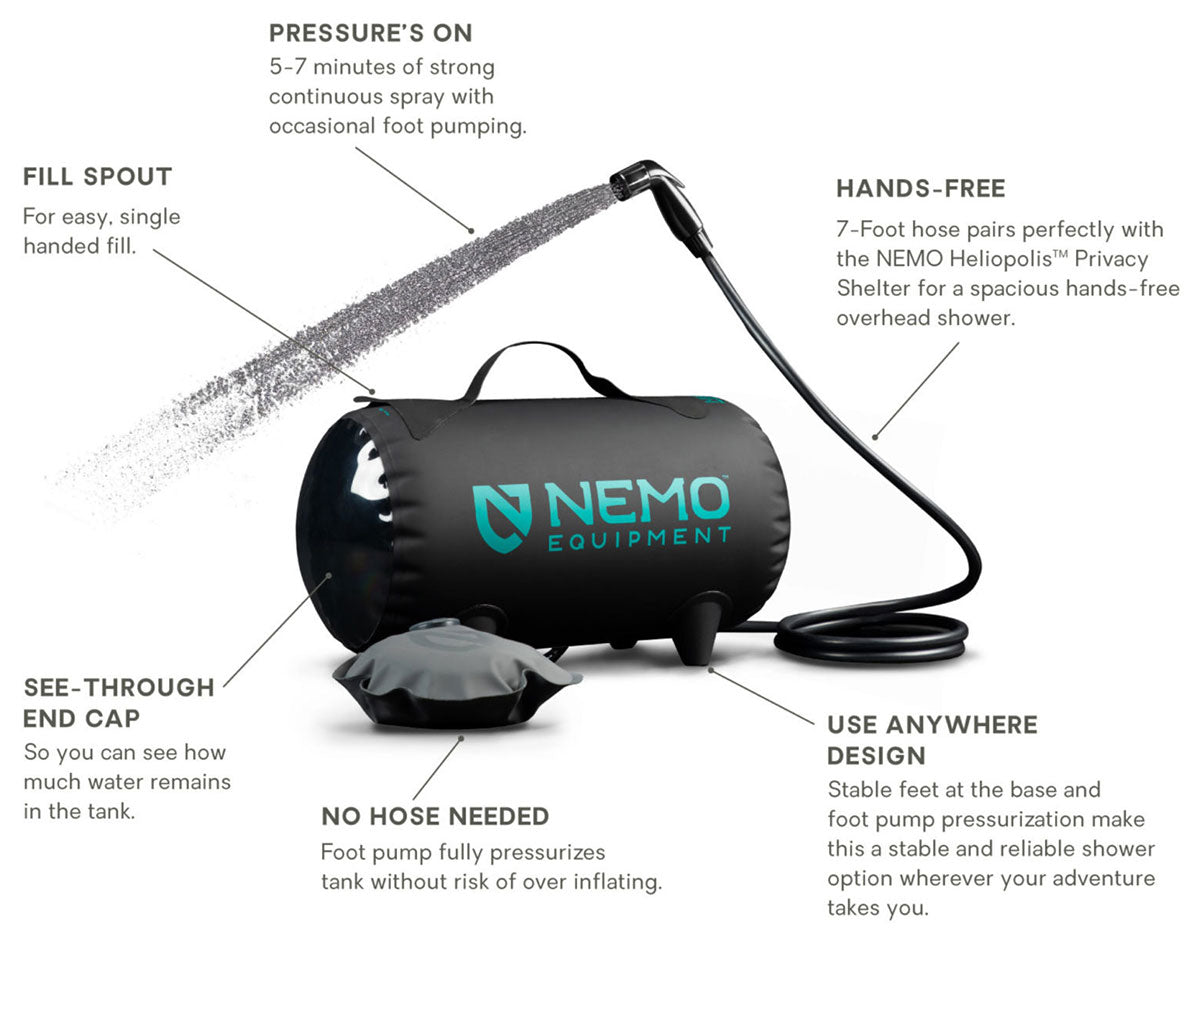 NEMO Equipment, Helio Pressure Shower overview